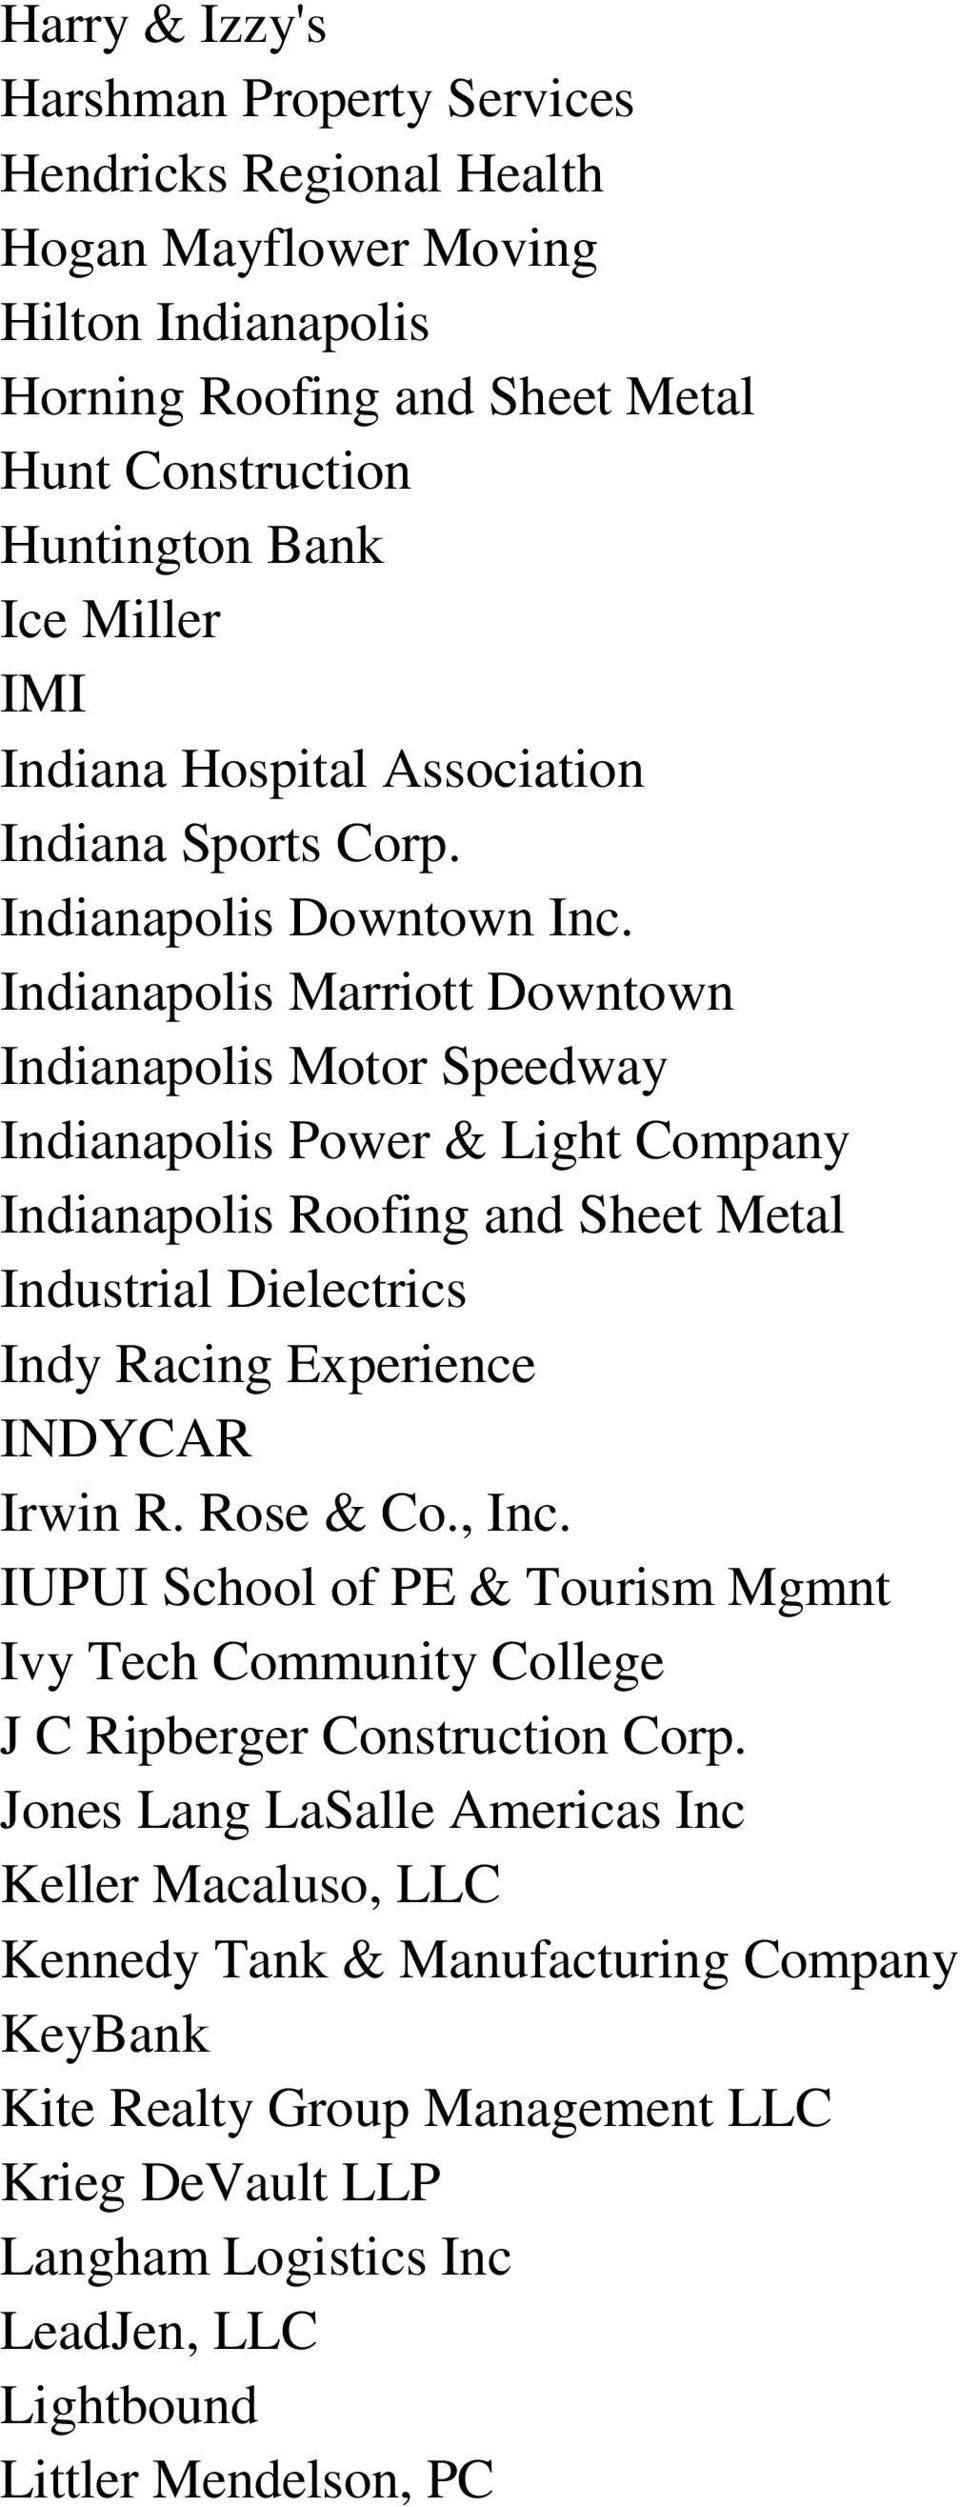 Indianapolis Marriott Downtown Indianapolis Motor Speedway Indianapolis Power & Light Company Indianapolis Roofing and Sheet Metal Industrial Dielectrics Indy Racing Experience INDYCAR Irwin R.